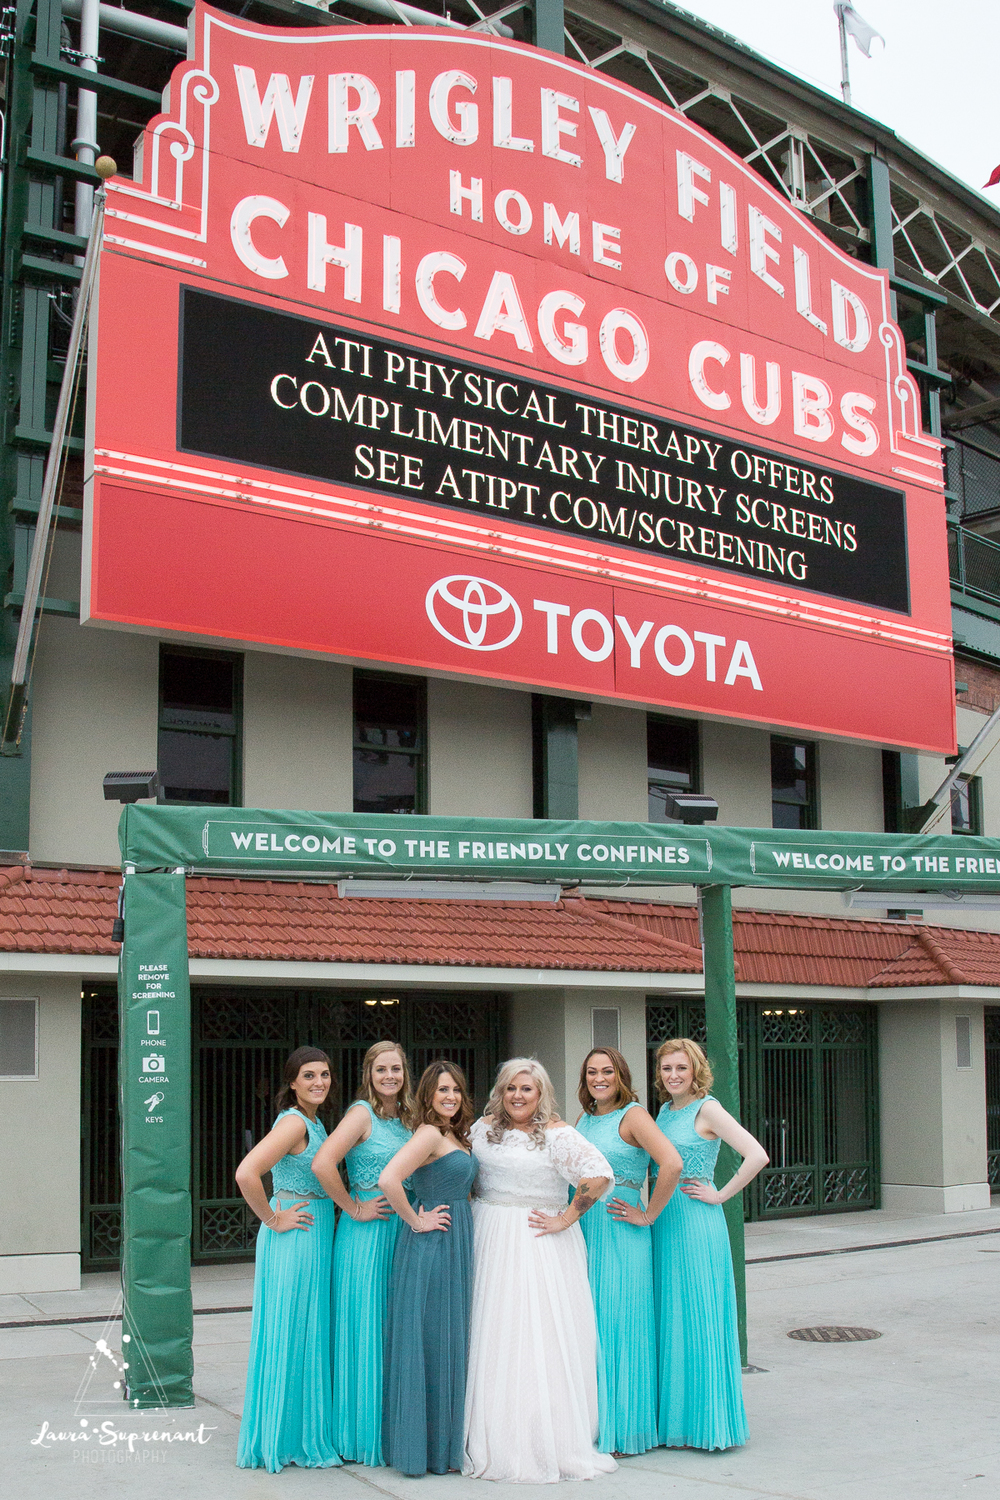 wedding_photography_chicago_wrigley_field_ravenswood_event_center_laura_suprenant (43 of 82).jpg